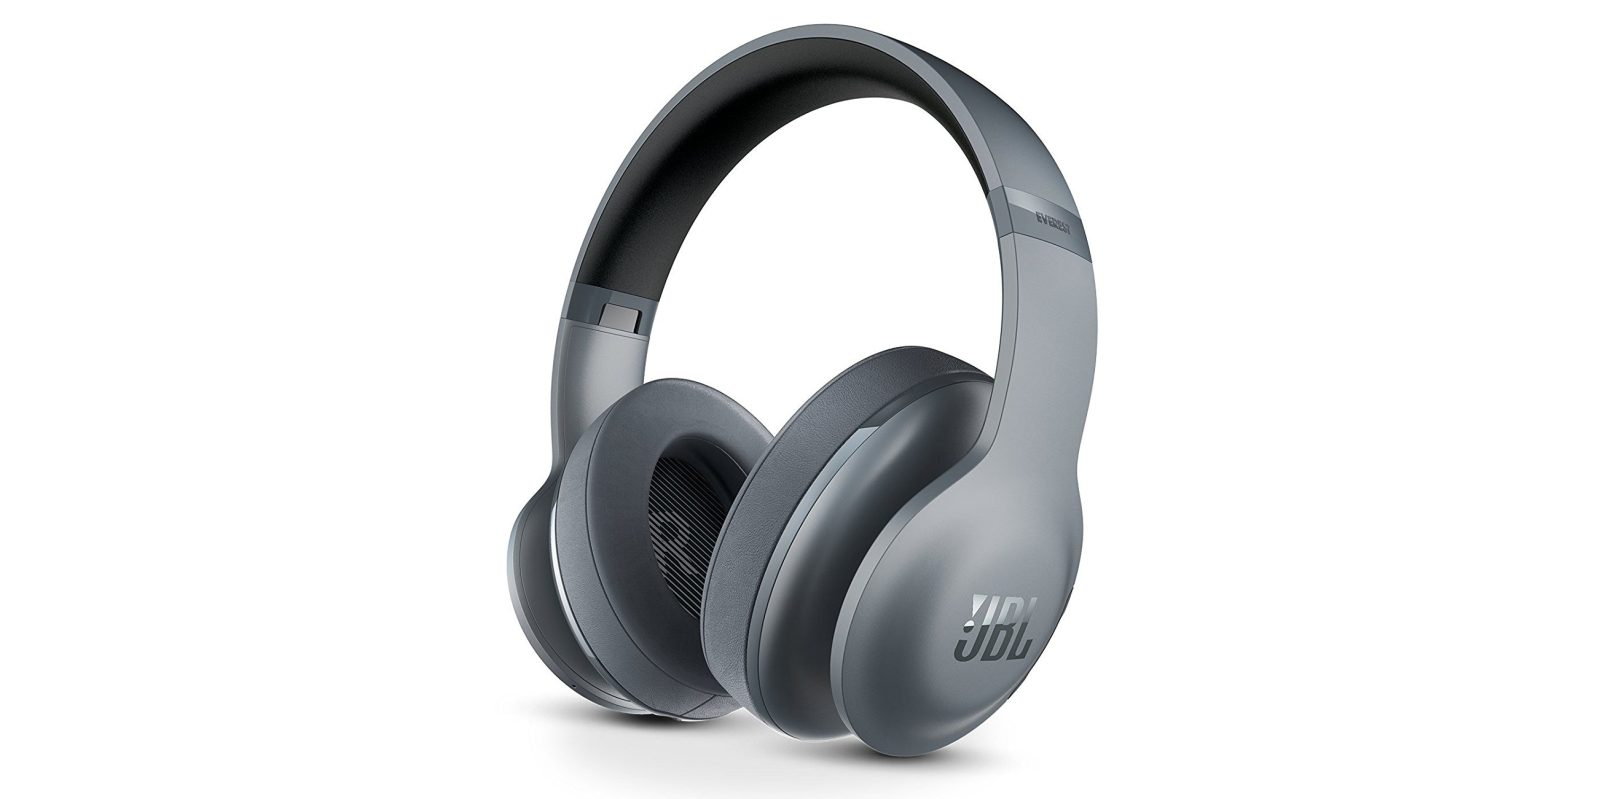 JBL Everest 700 Wireless Headphones on sale for $90 shipped (Cert. Refurb, Orig. $200)